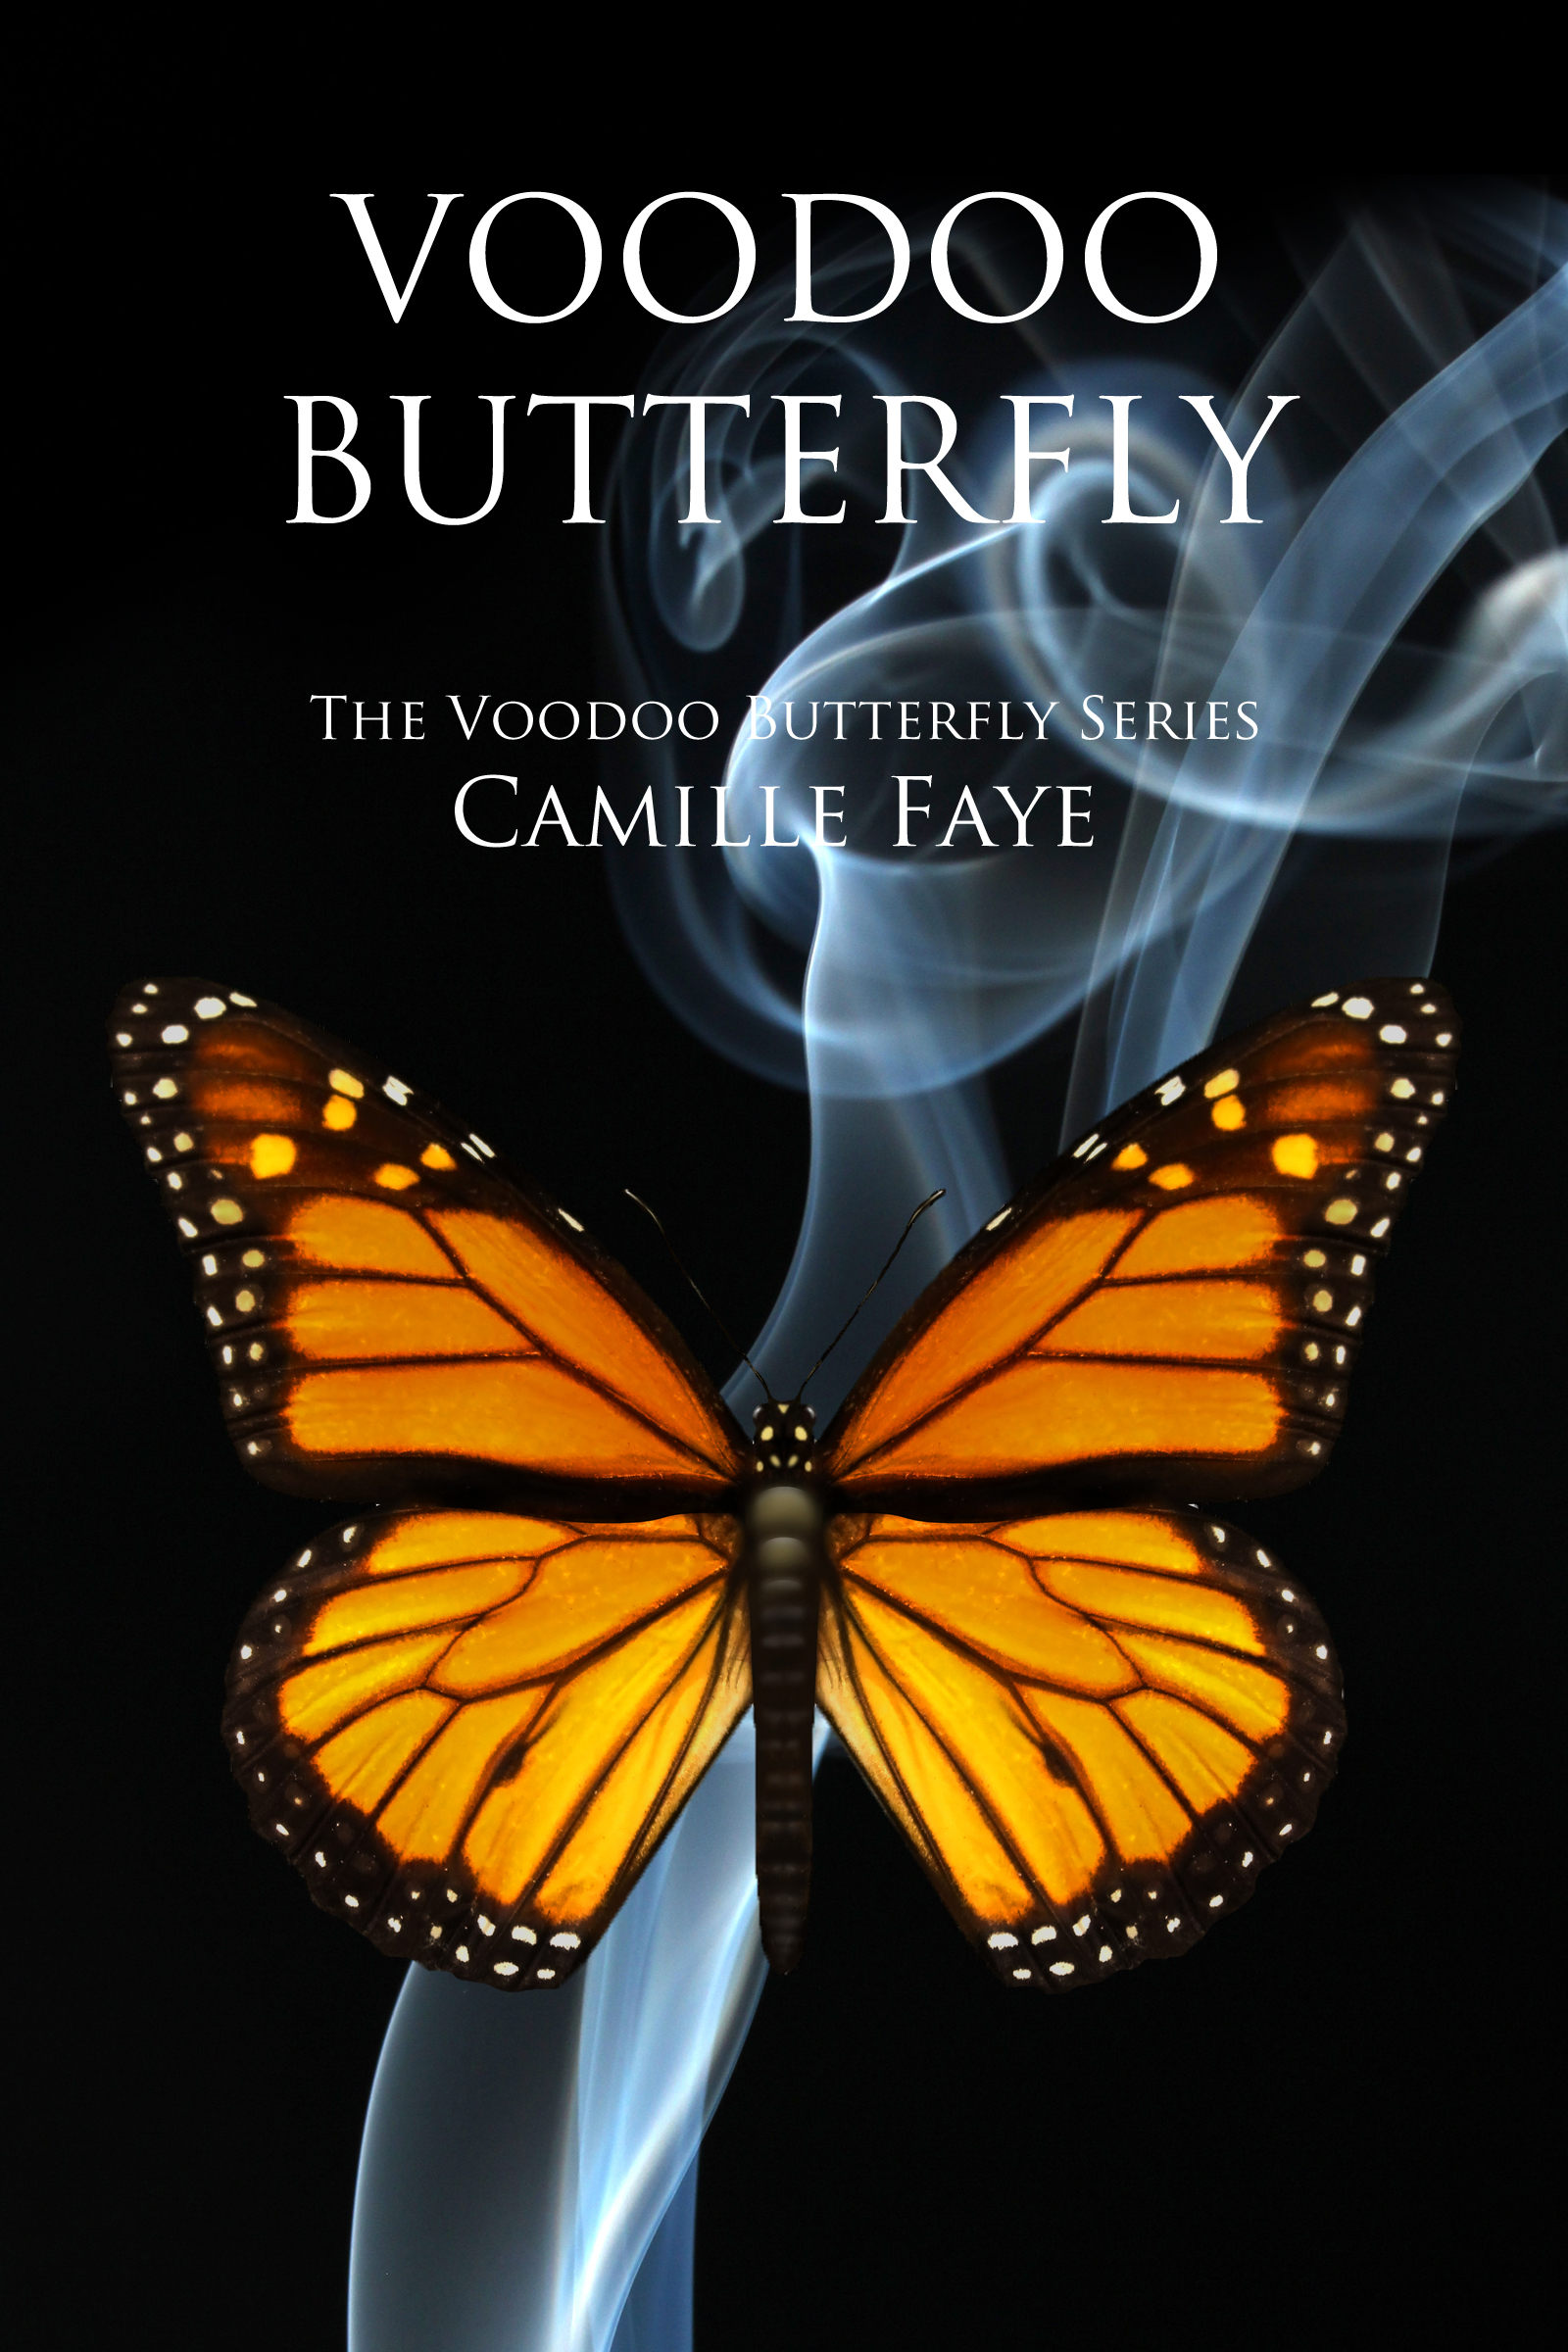 Voodoo Butterfly - When twenty-five-year old Sophie Nouveau inherits her grandmother's voodoo shop she knows nothing about voodoo. Or her family's history of Mind Changers, who have the power to change evil people to good.